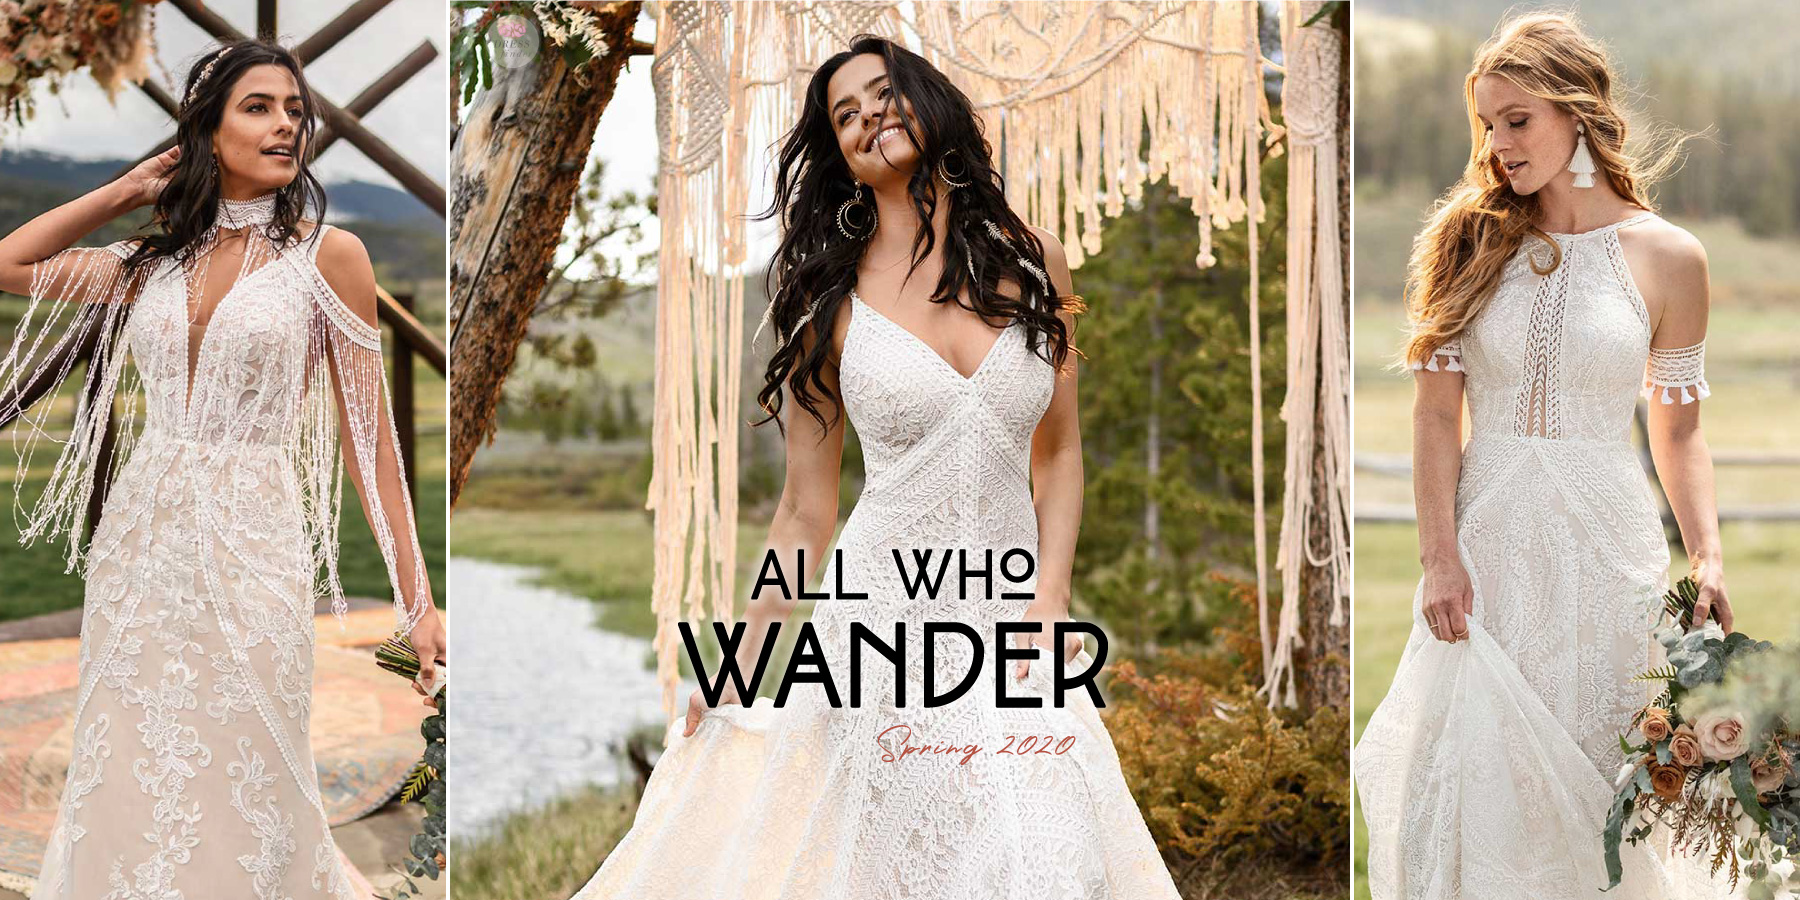 All Who Wonder